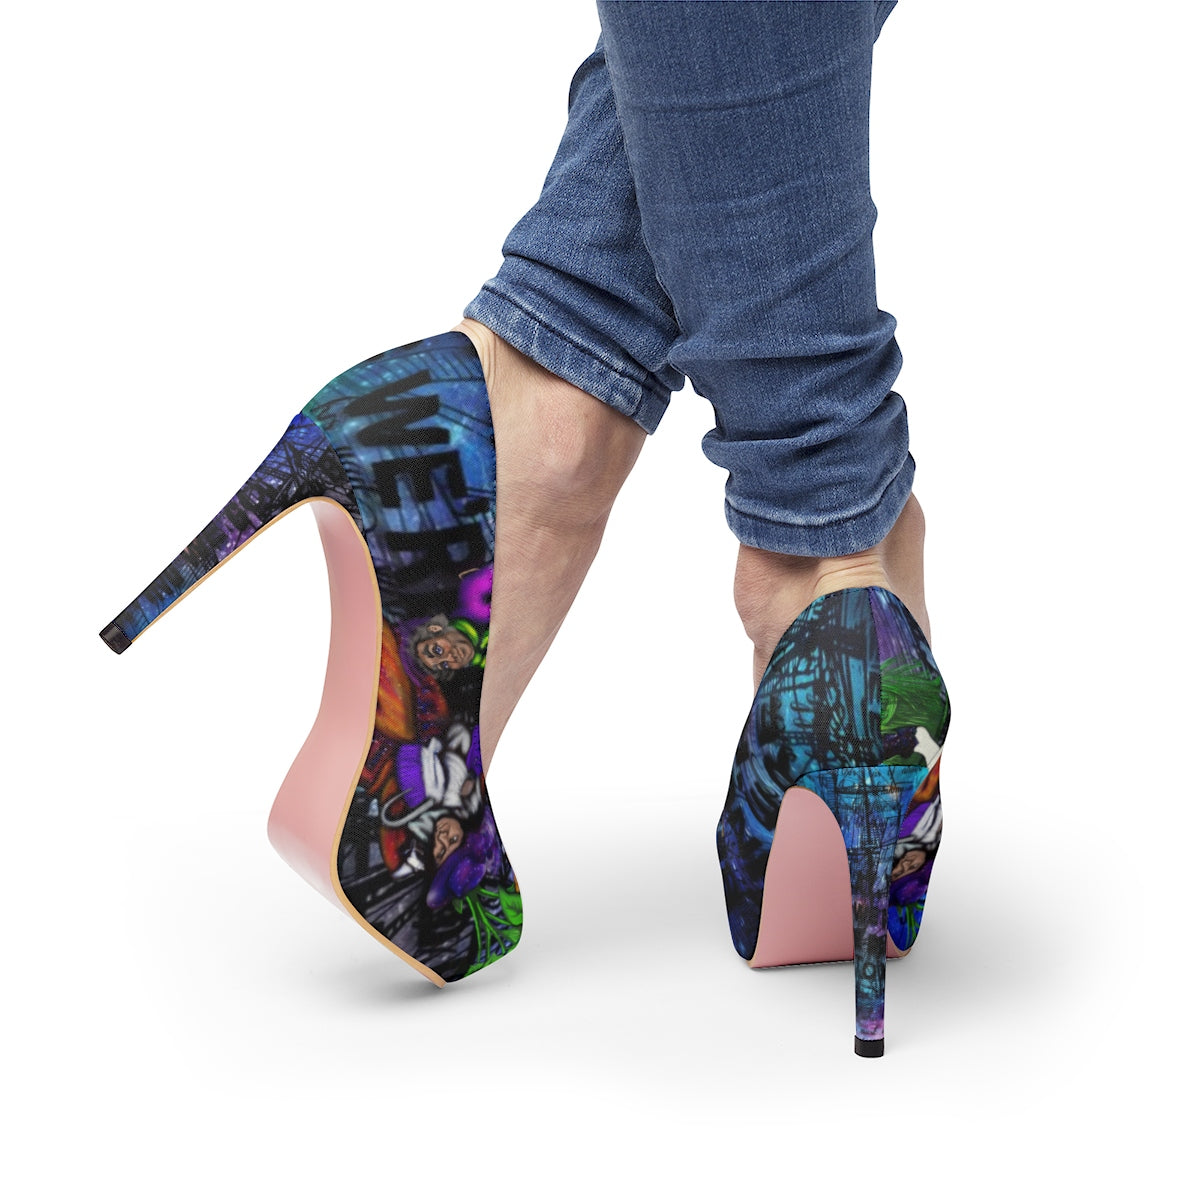 Captain Hook & Smee Stiletto Pumps-Starry Meadows